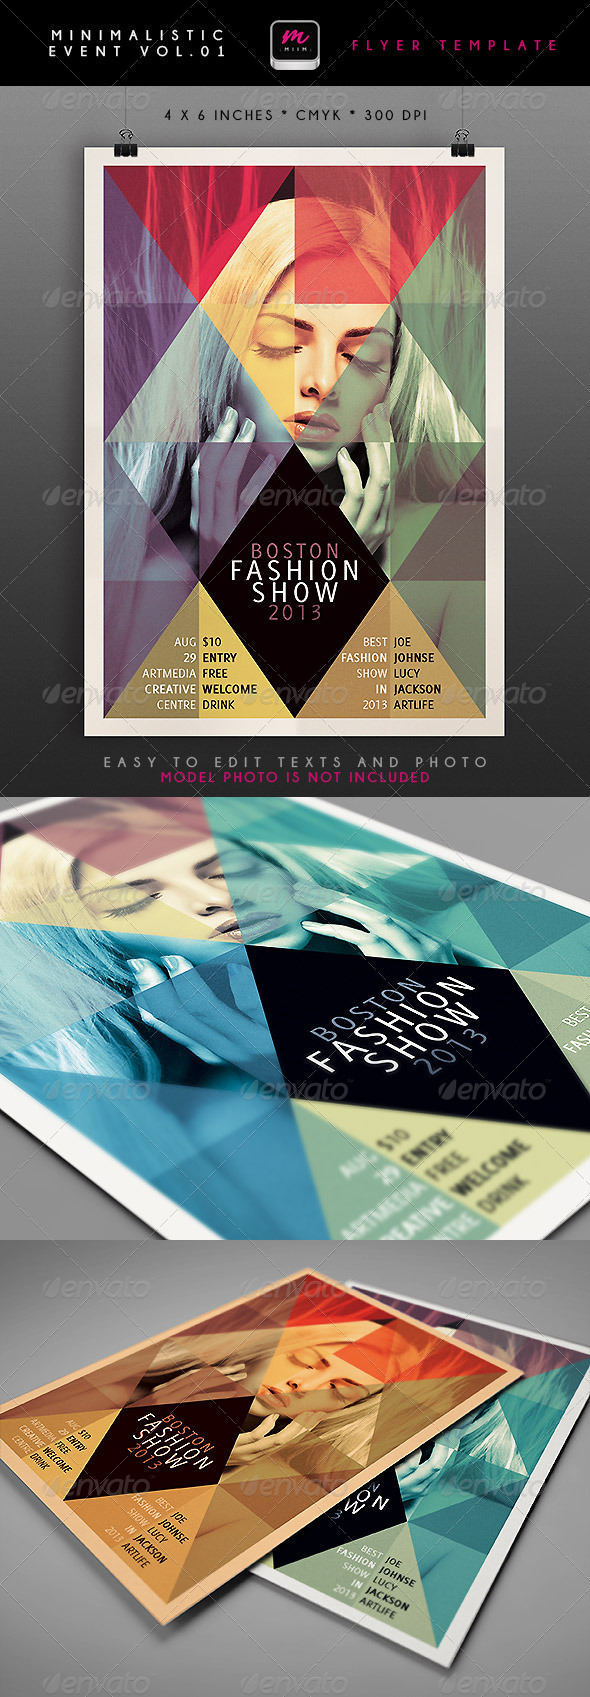 GraphicRiver Minimalistic Event Flyer 1 4701748